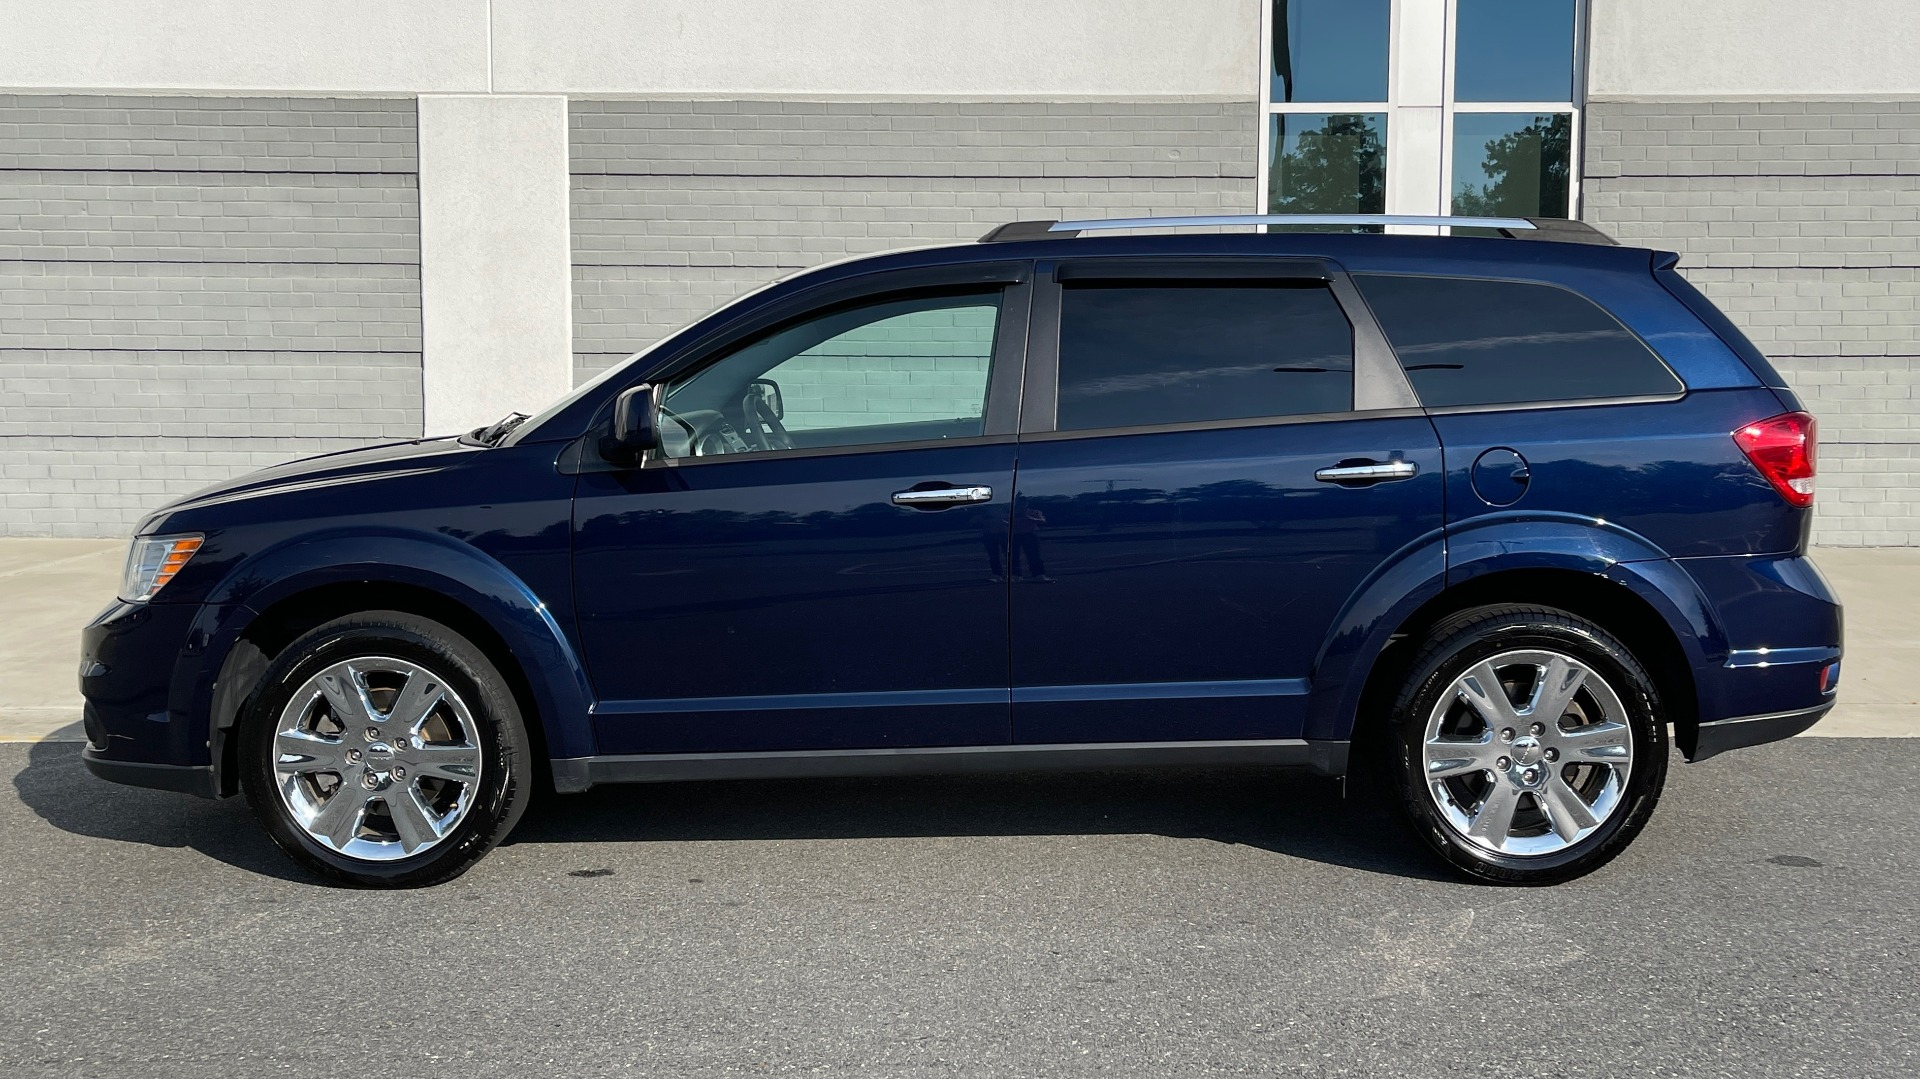 Used 2017 Dodge JOURNEY SXT PREMIUM / 2.4L / 4-SPD AUTO / KEYLESS-GO / 3-ROW / 19IN WHEELS for sale $15,995 at Formula Imports in Charlotte NC 28227 4